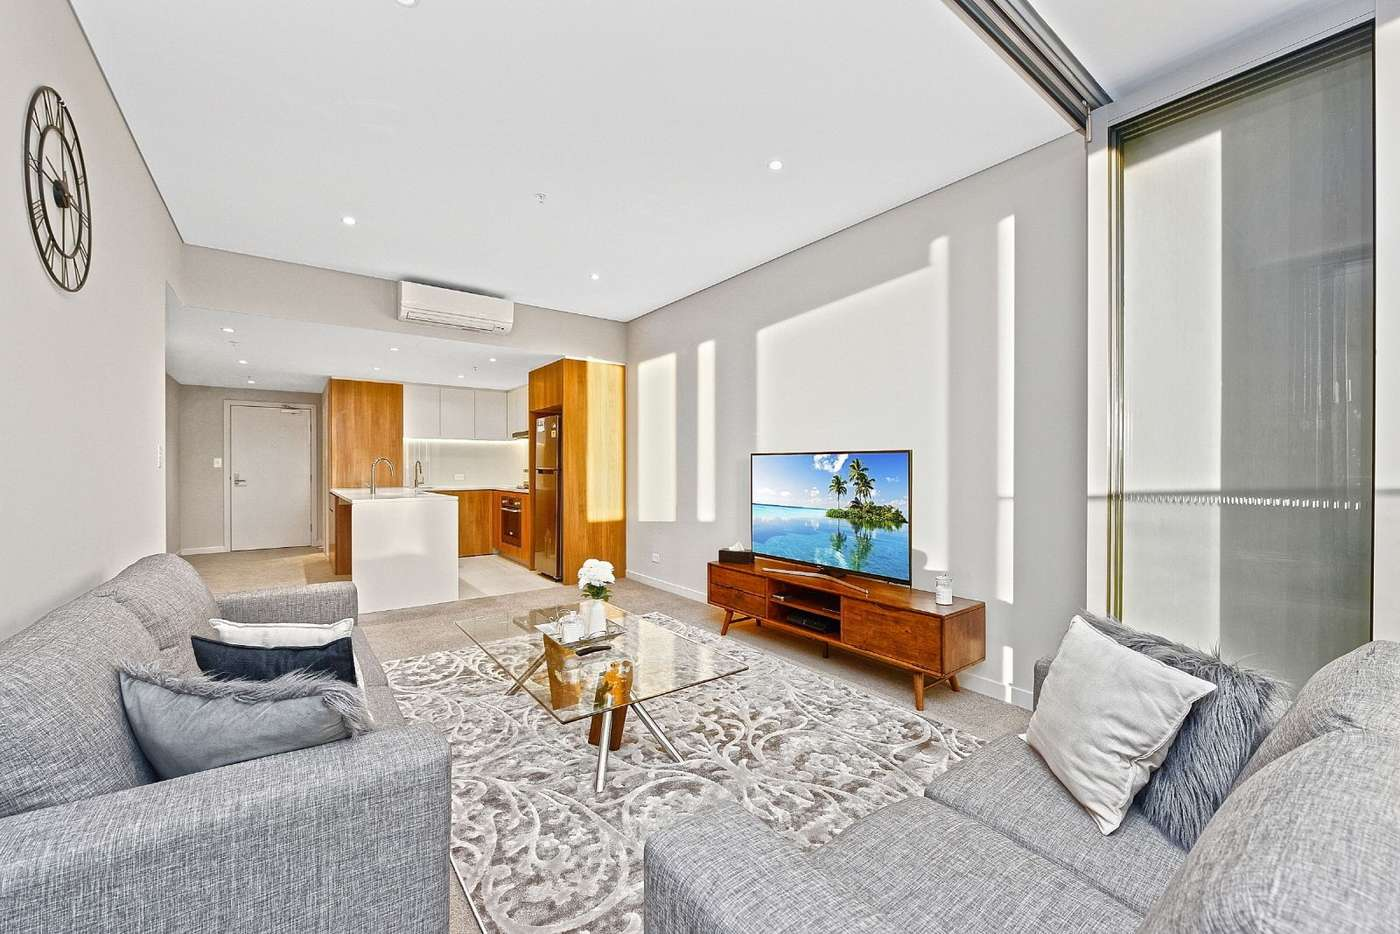 Main view of Homely apartment listing, 2314/18 footbridge Boulevard, Wentworth Point NSW 2127